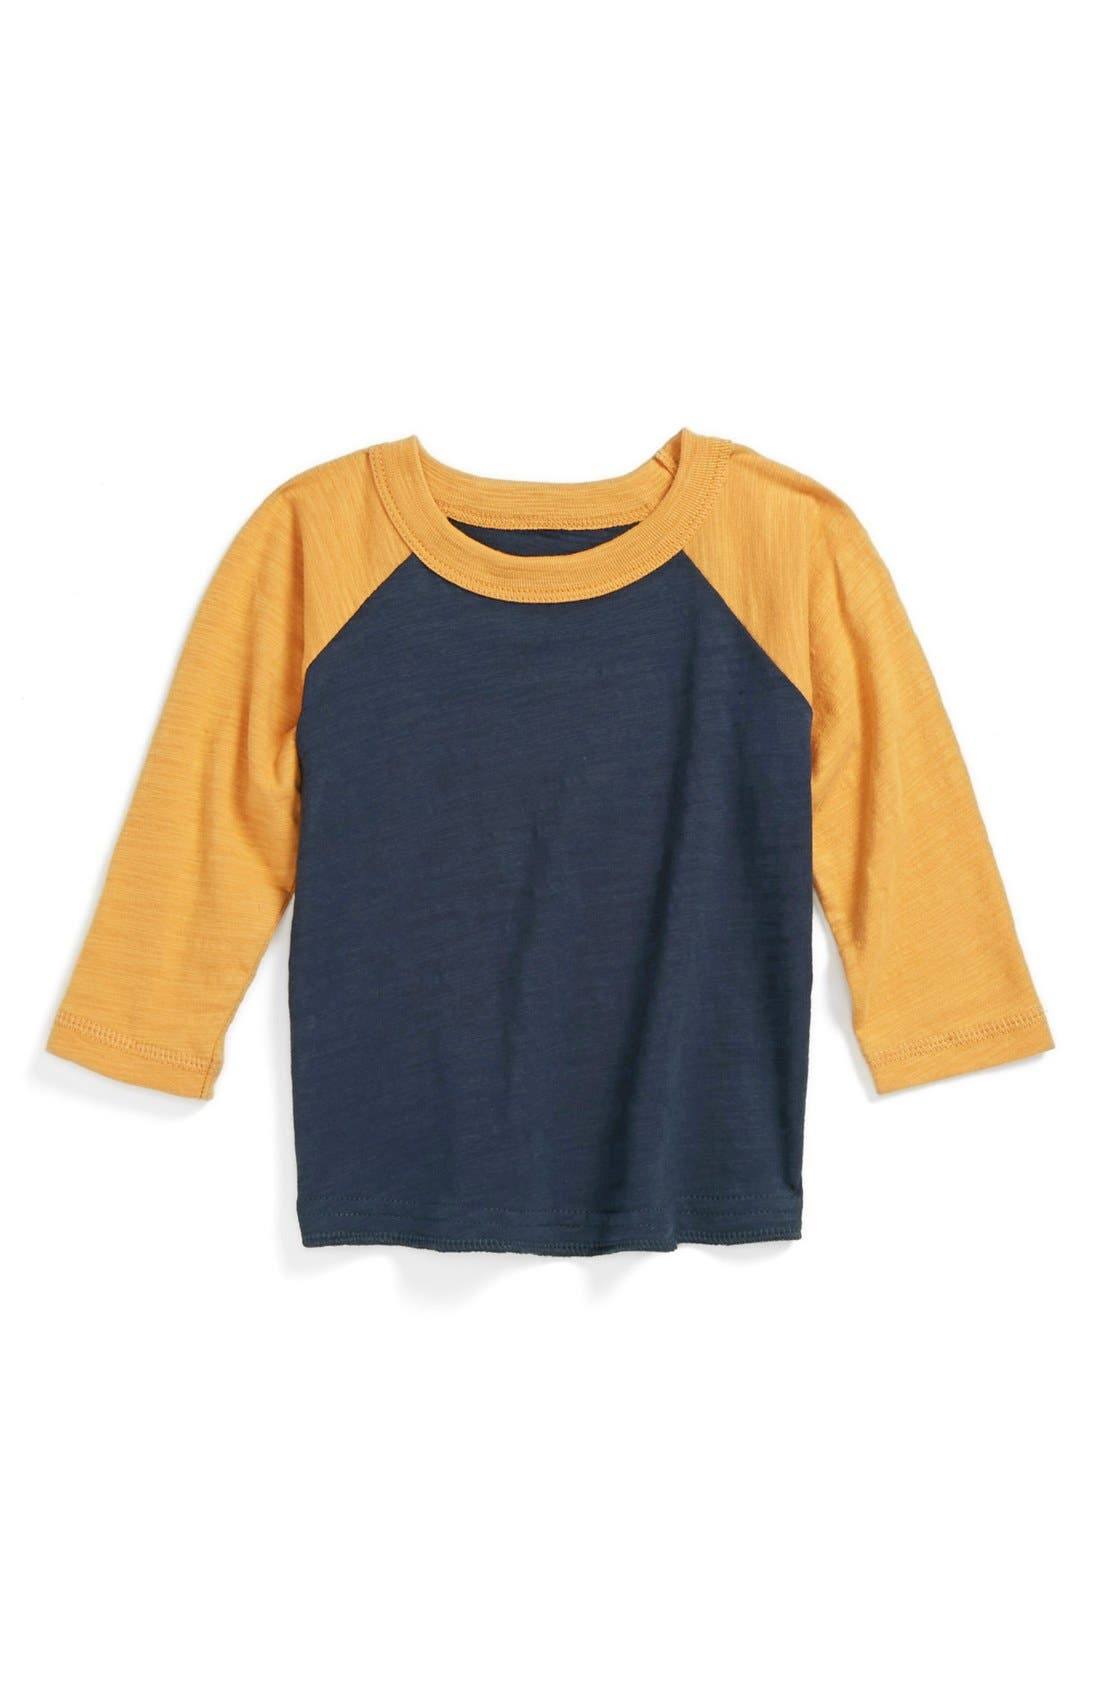 Alternate Image 1 Selected - Peek 'Field' Long Sleeve T-Shirt (Baby Boys)